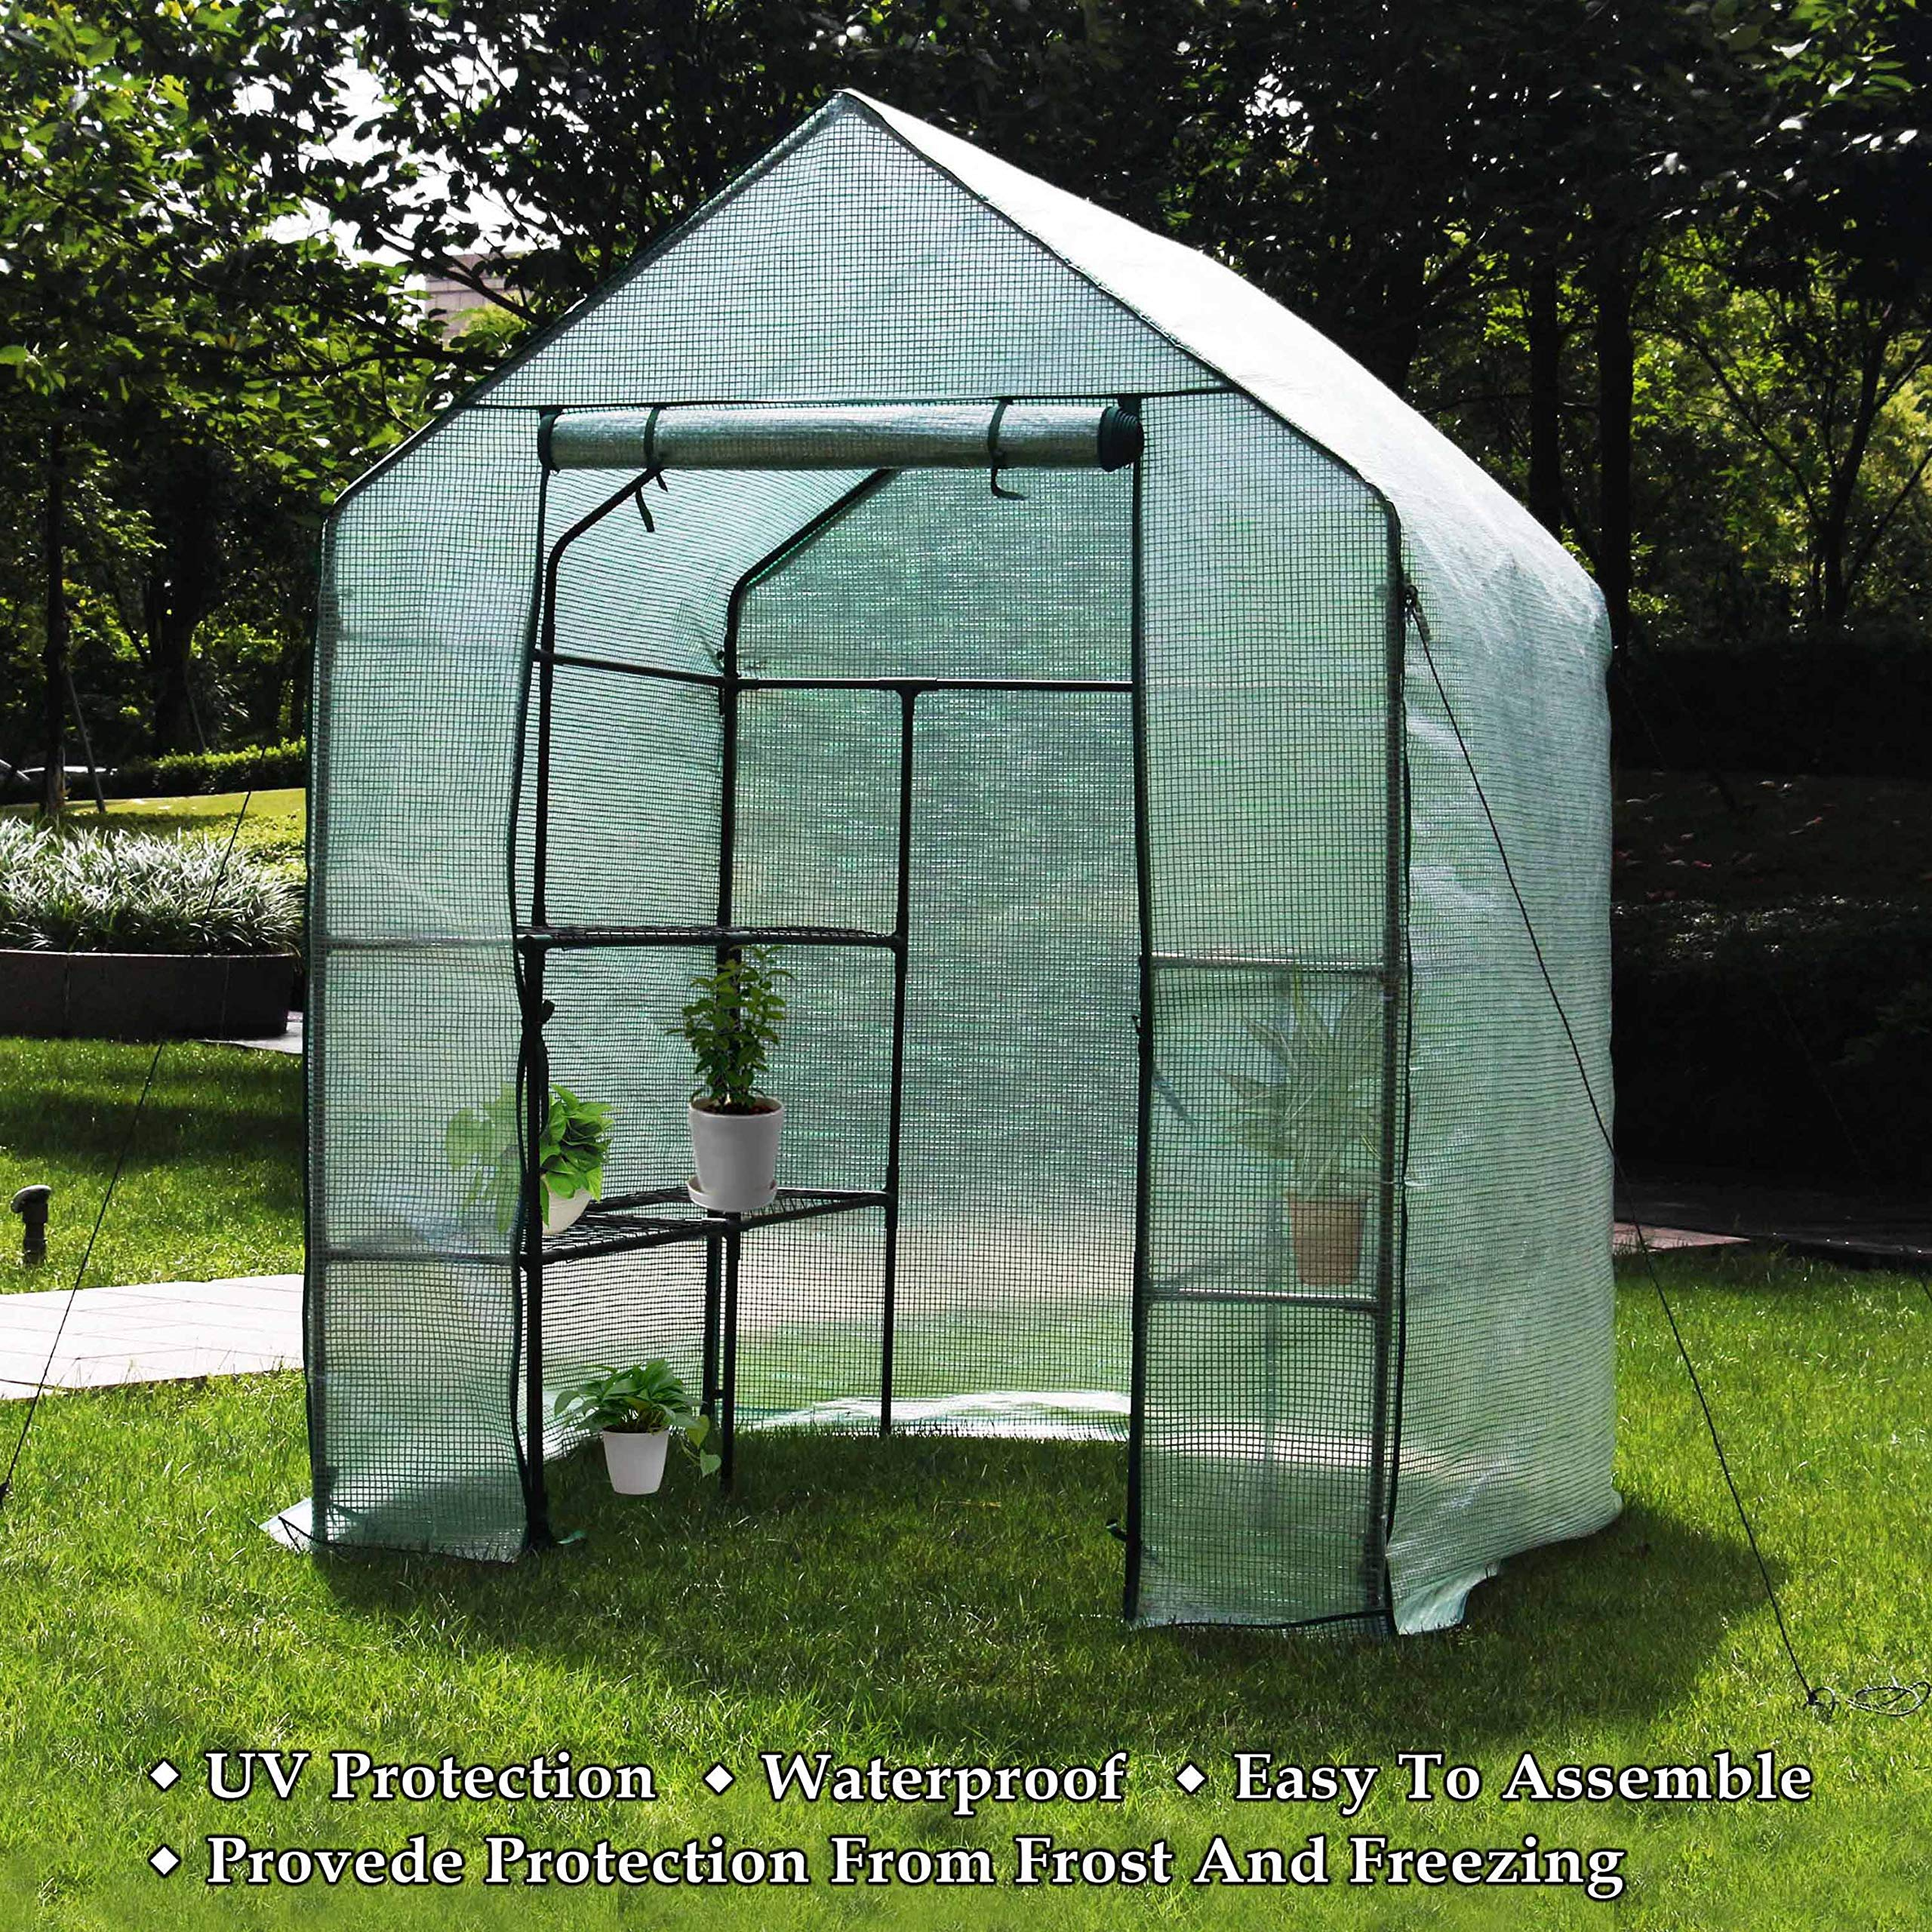 Deluxe Green House 56'' W x 56'' D x 77'' H,Walk In Outdoor Plant Gardening Greenhouse,3 Tiers 6 Shelves (56'' W x 56'' D x 77'' H)